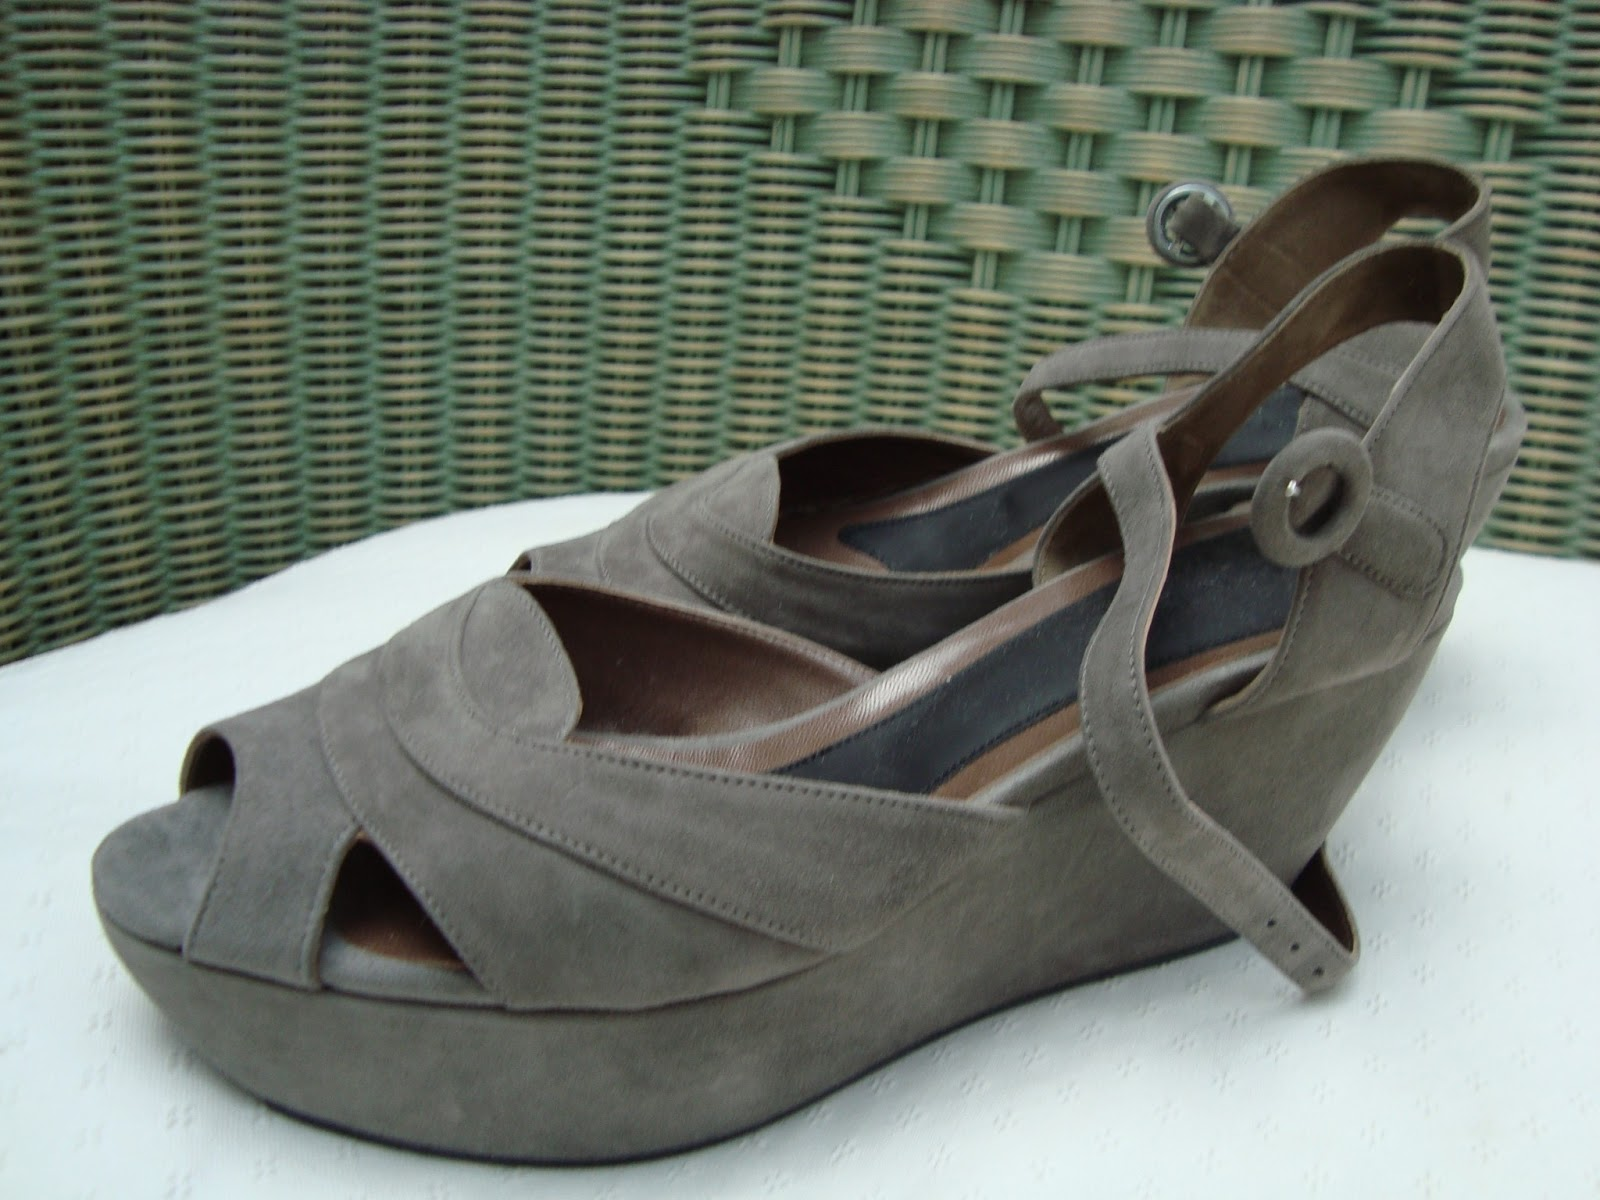 Marni Suede Wedge Sandals sale latest collections free shipping latest collections clearance online cheap real 94U8sQO